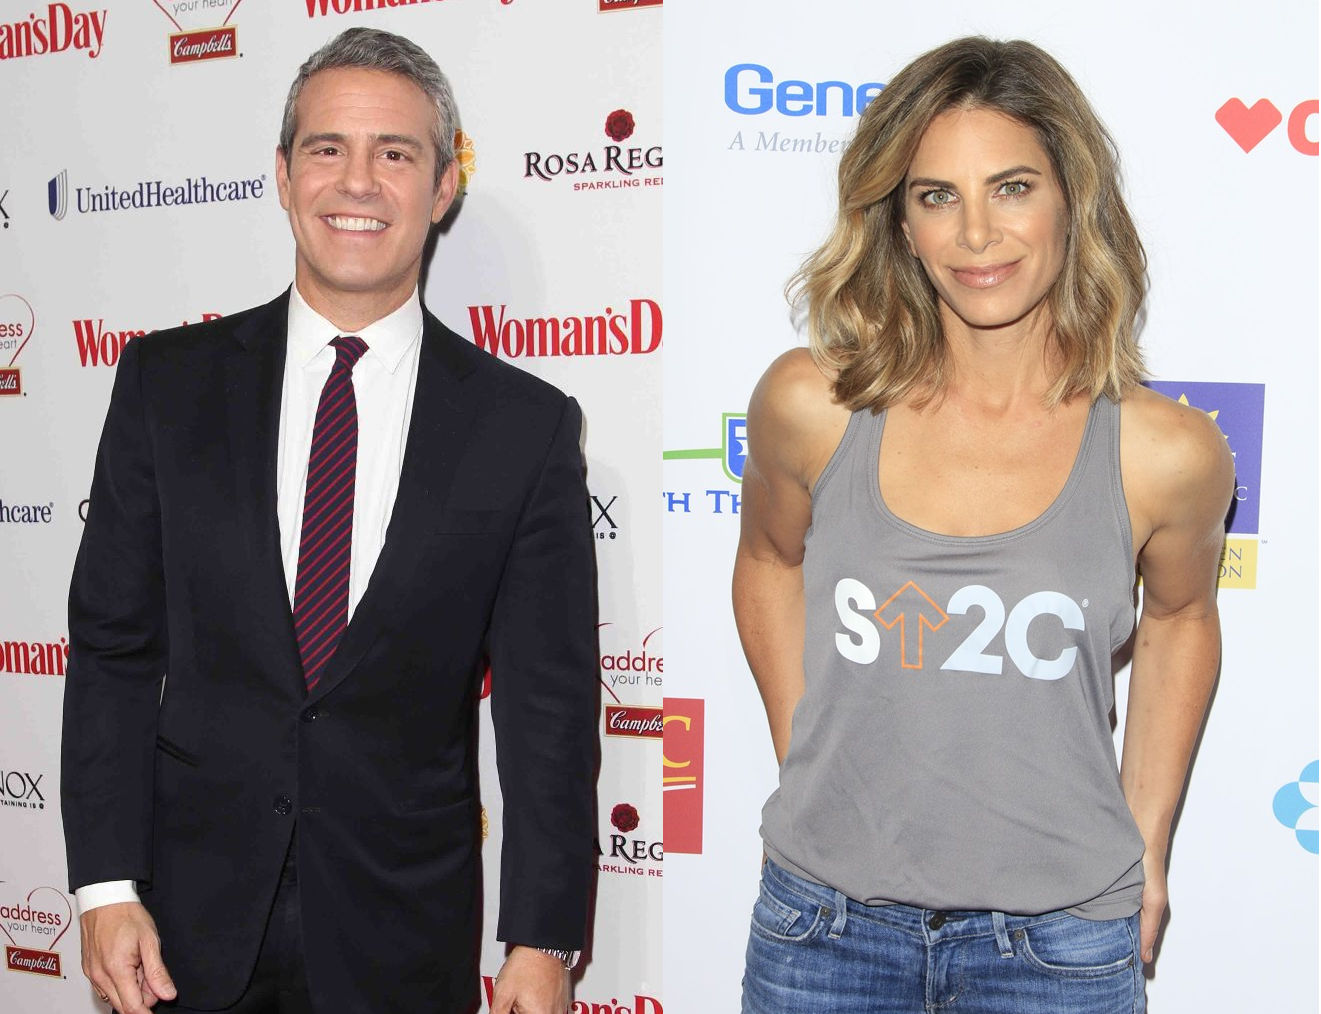 Andy Cohen vs Jillian Michaels